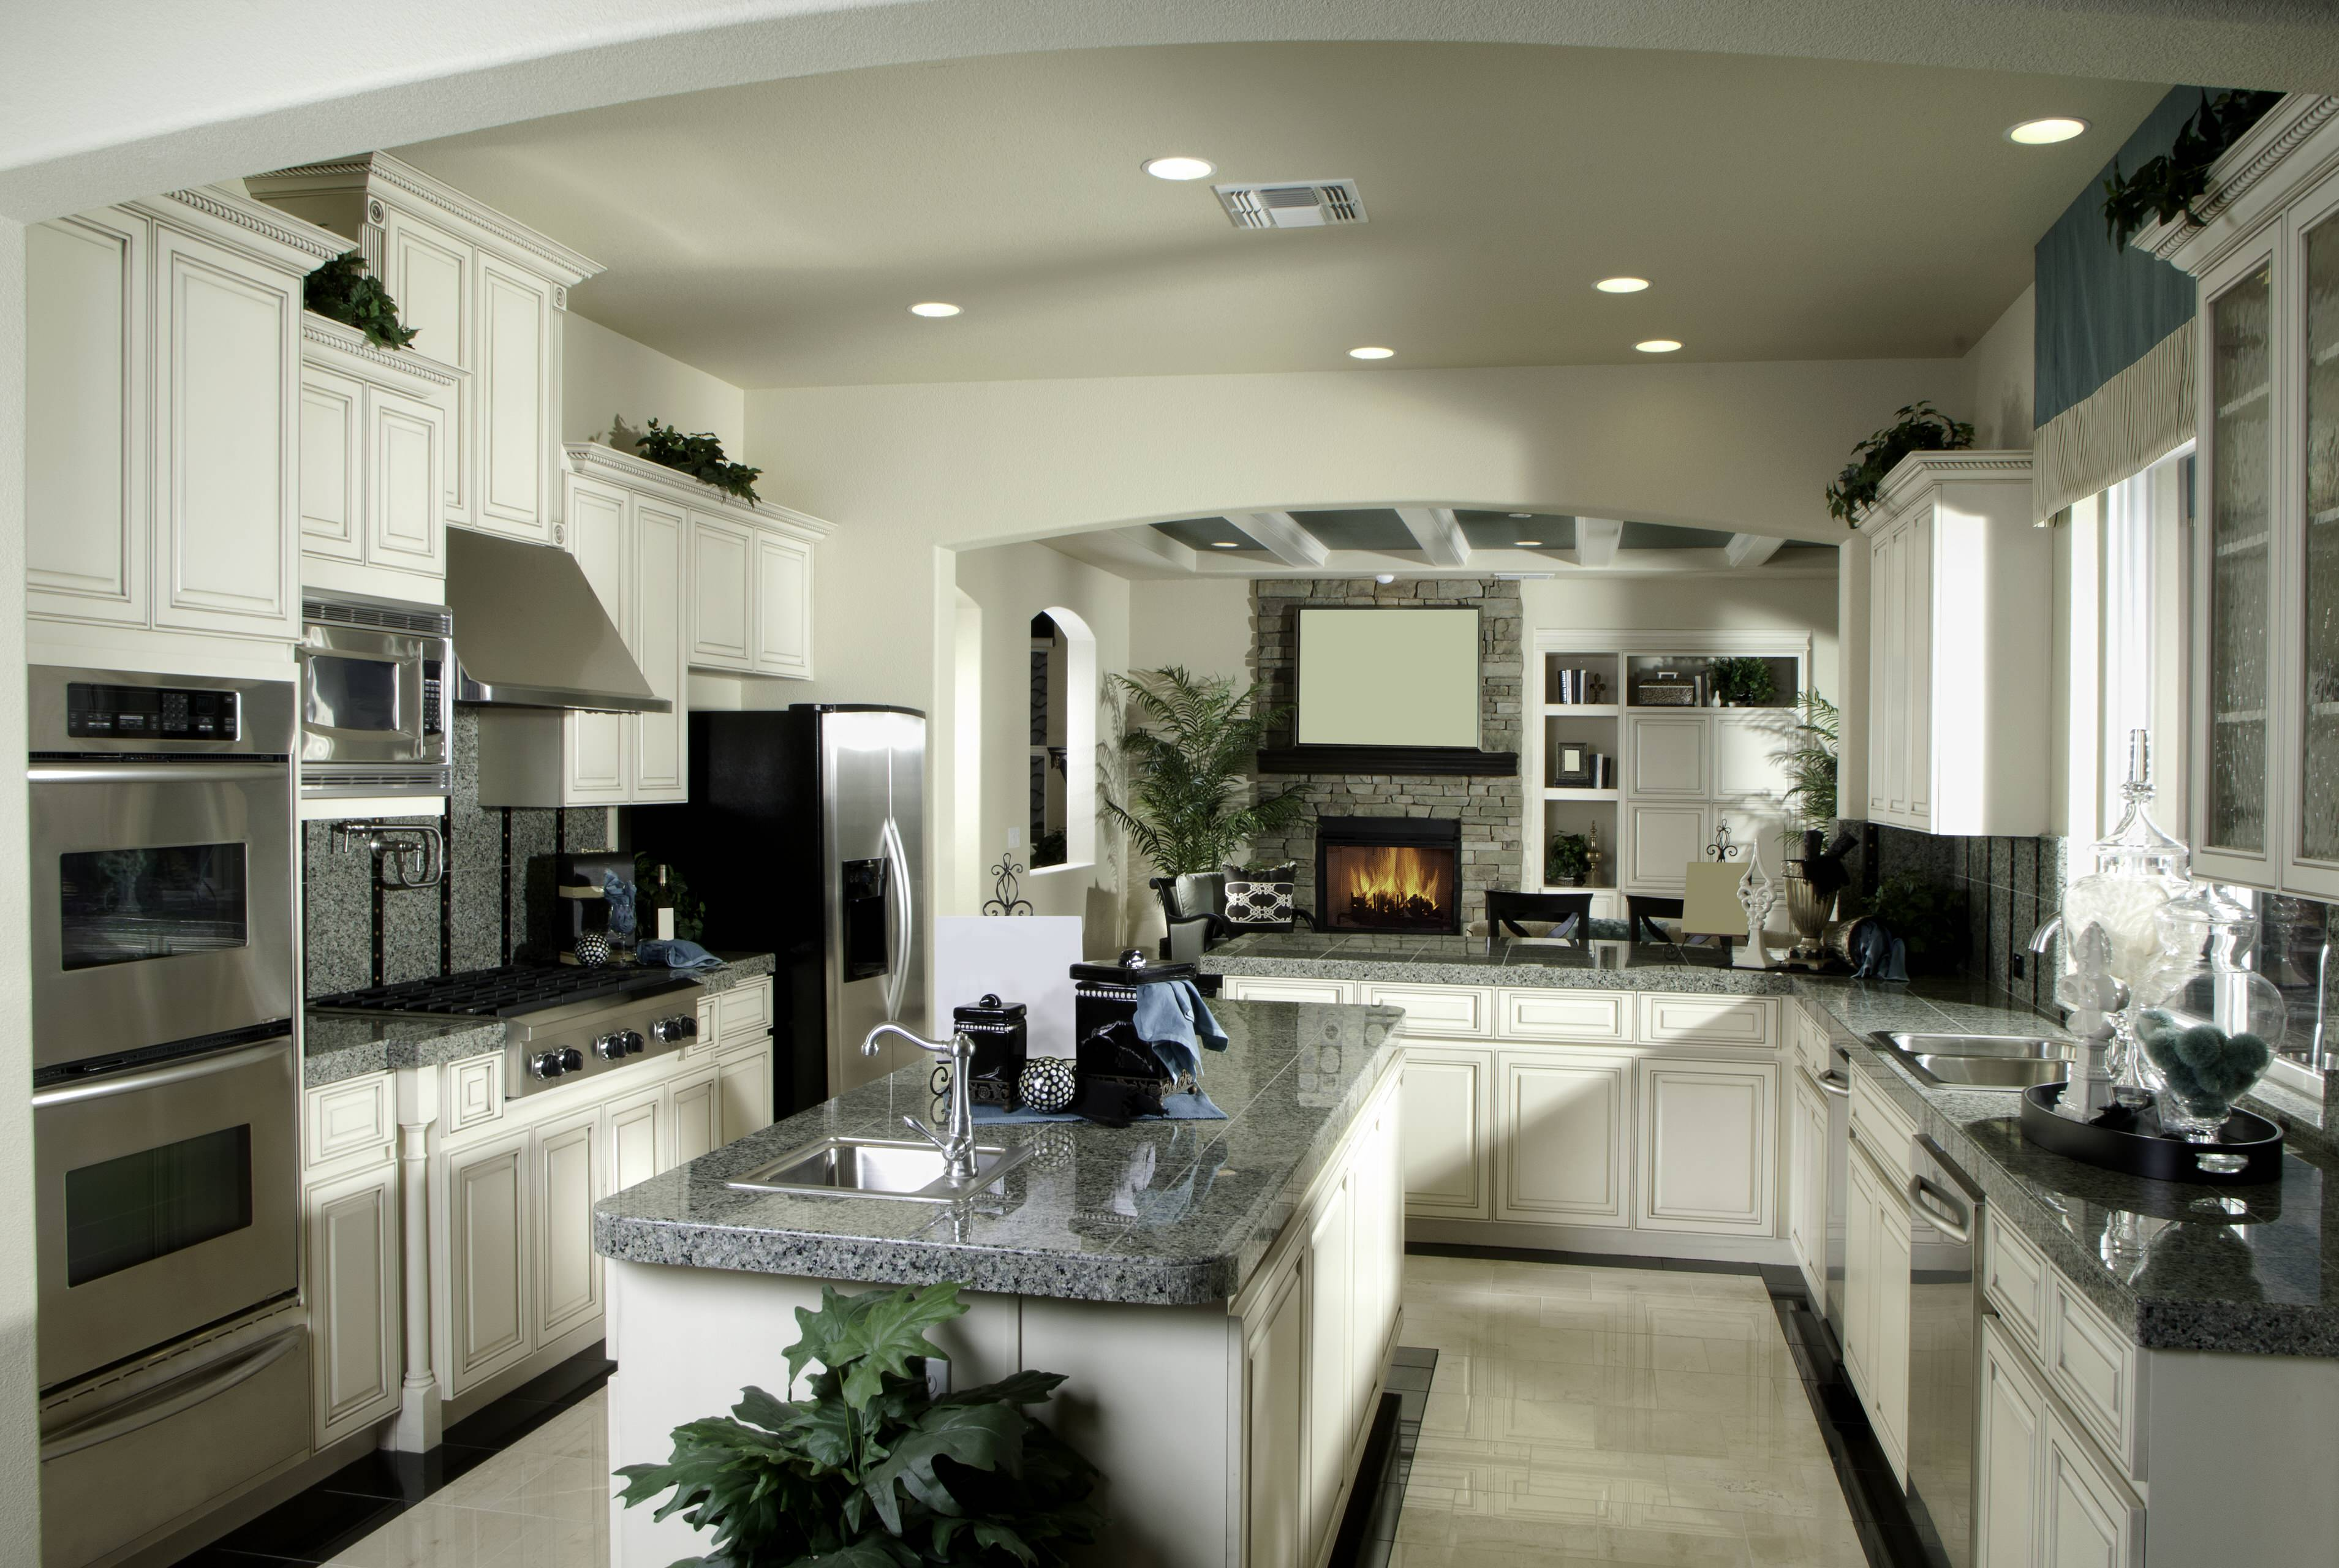 Chef's kitchen with dual sinks and dishwashers